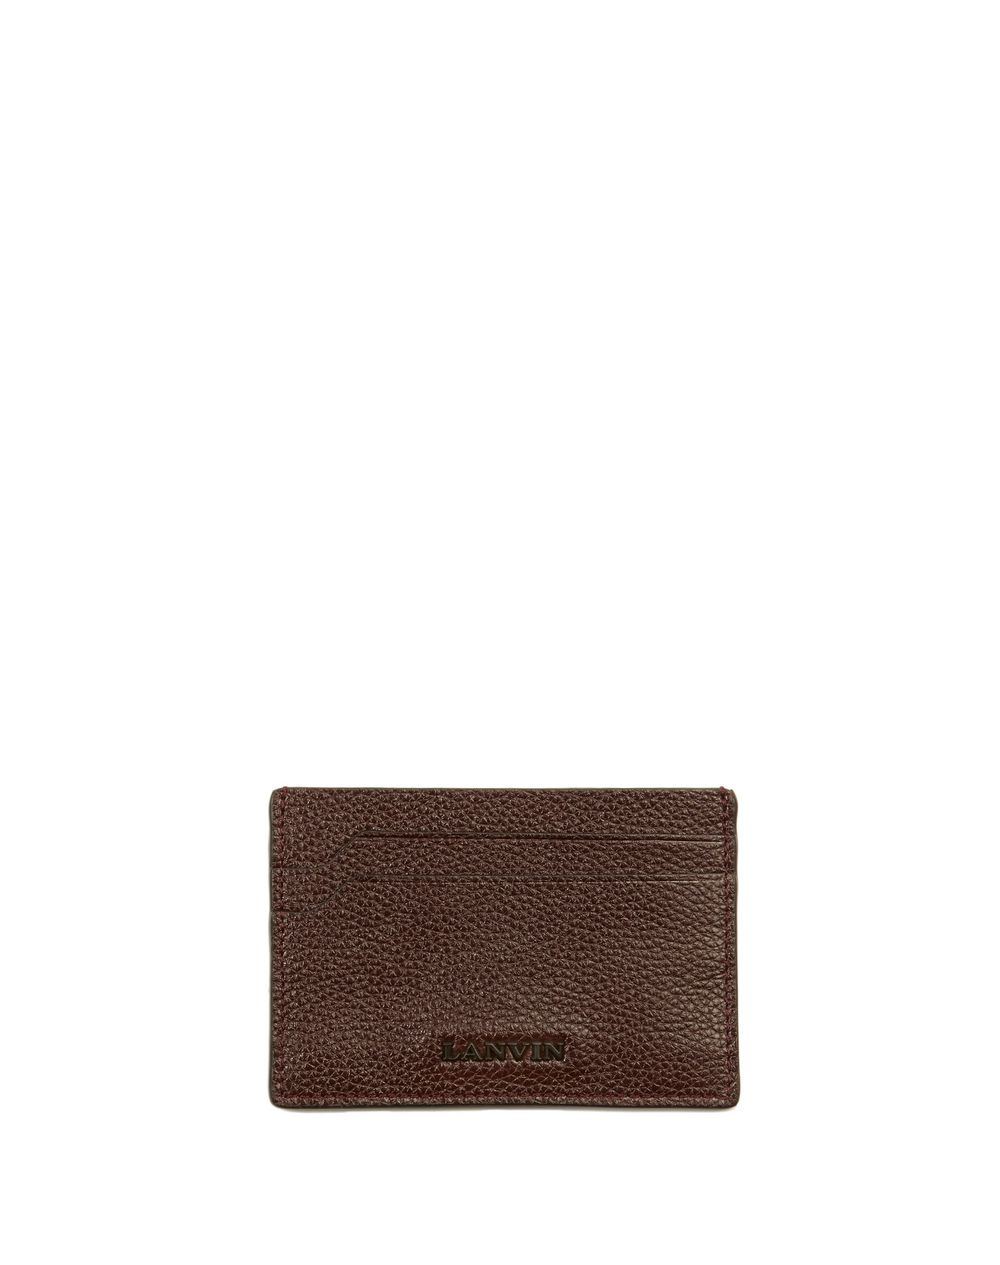 GRAINED CALFSKIN CARD HOLDER - Lanvin